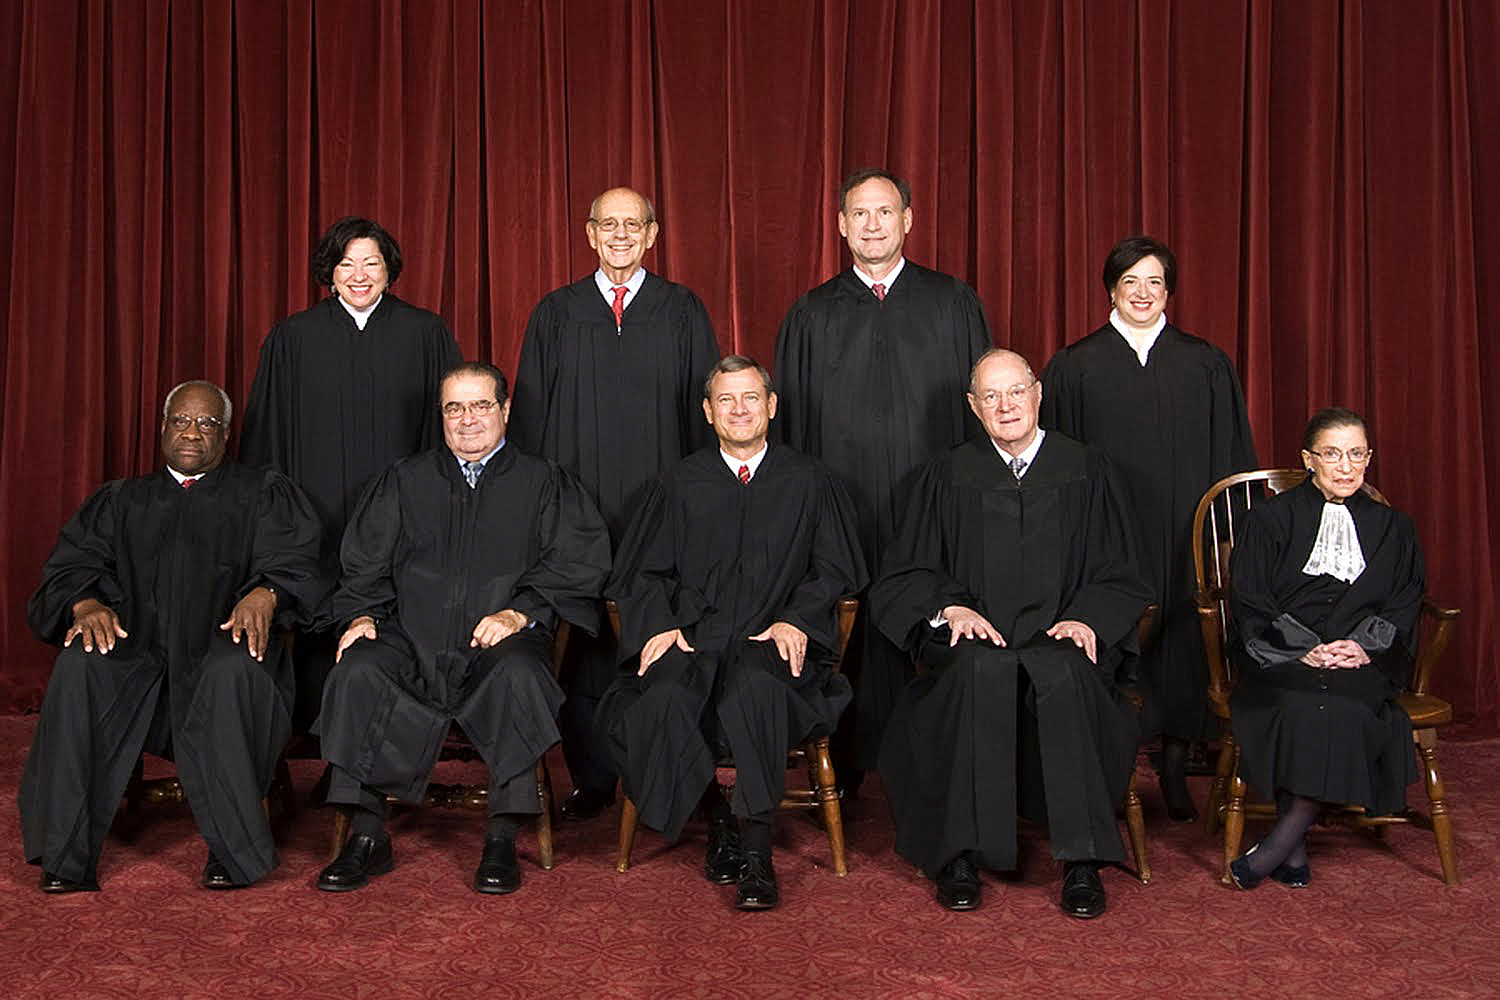 Supreme Court US 2010 Why we need lifetime terms for Supreme Court justices